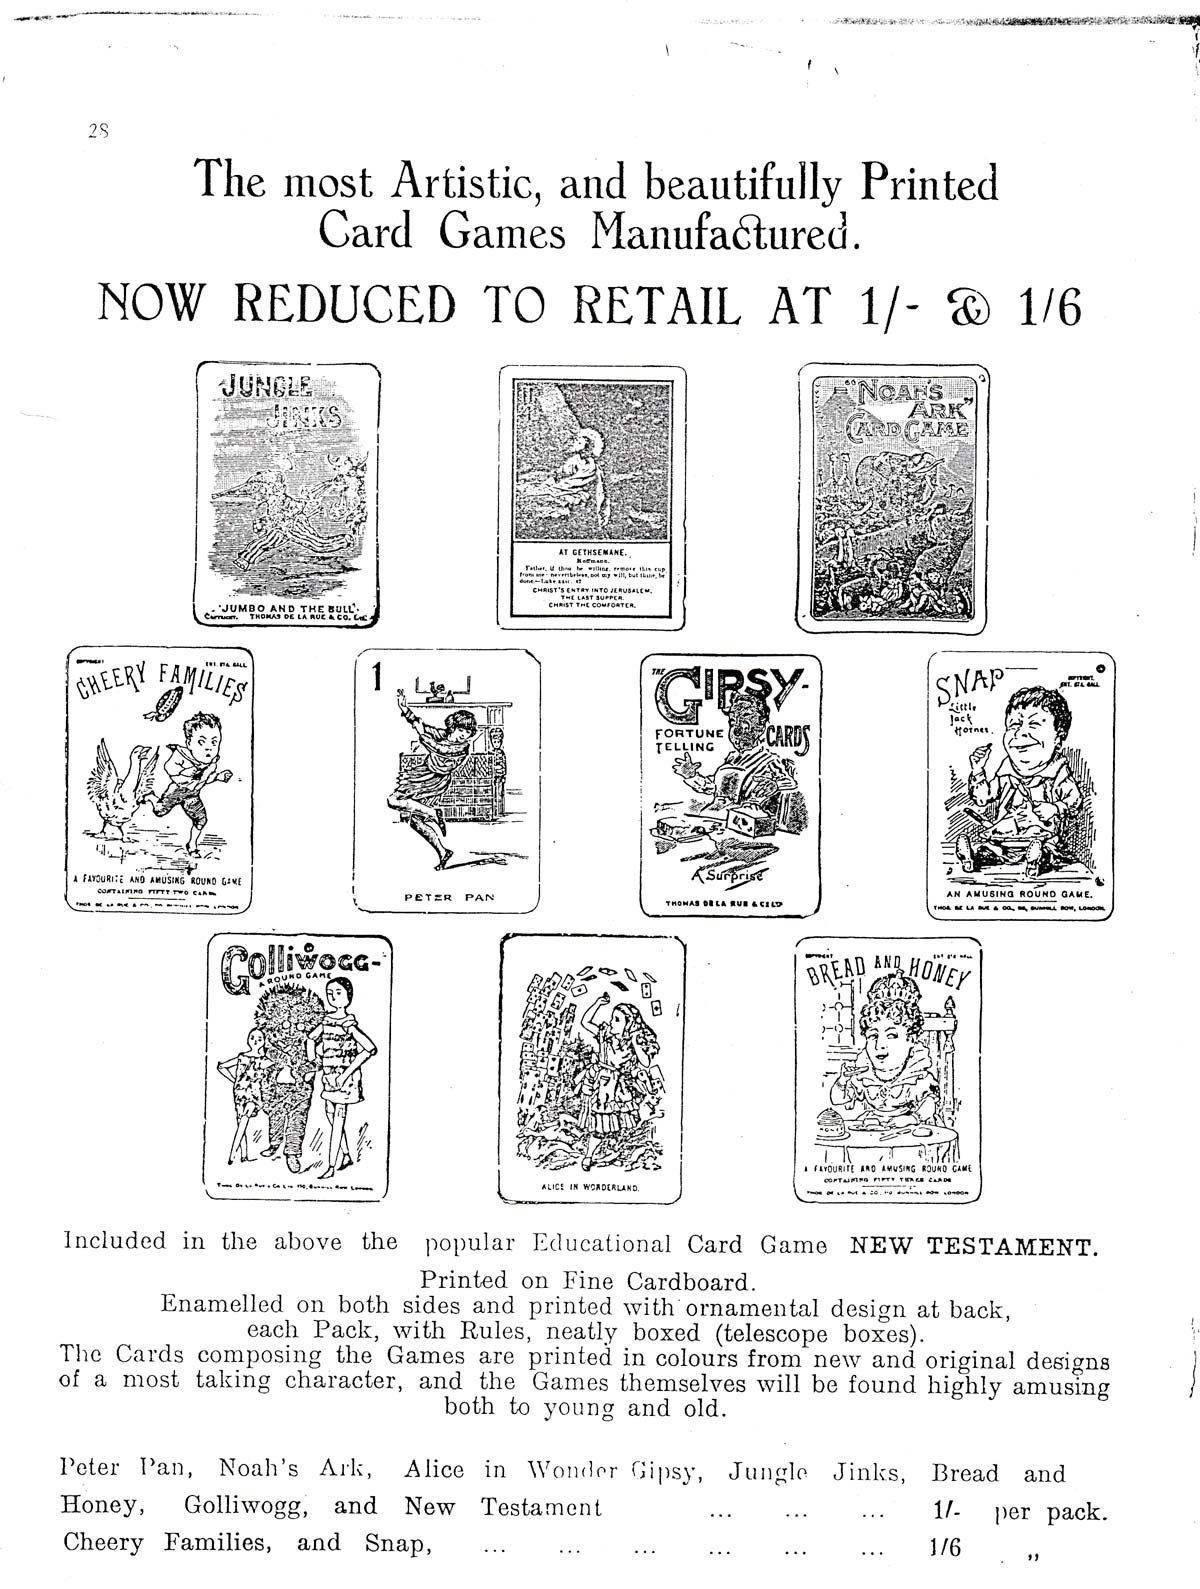 Gibsons Games Leaflet, c.1939